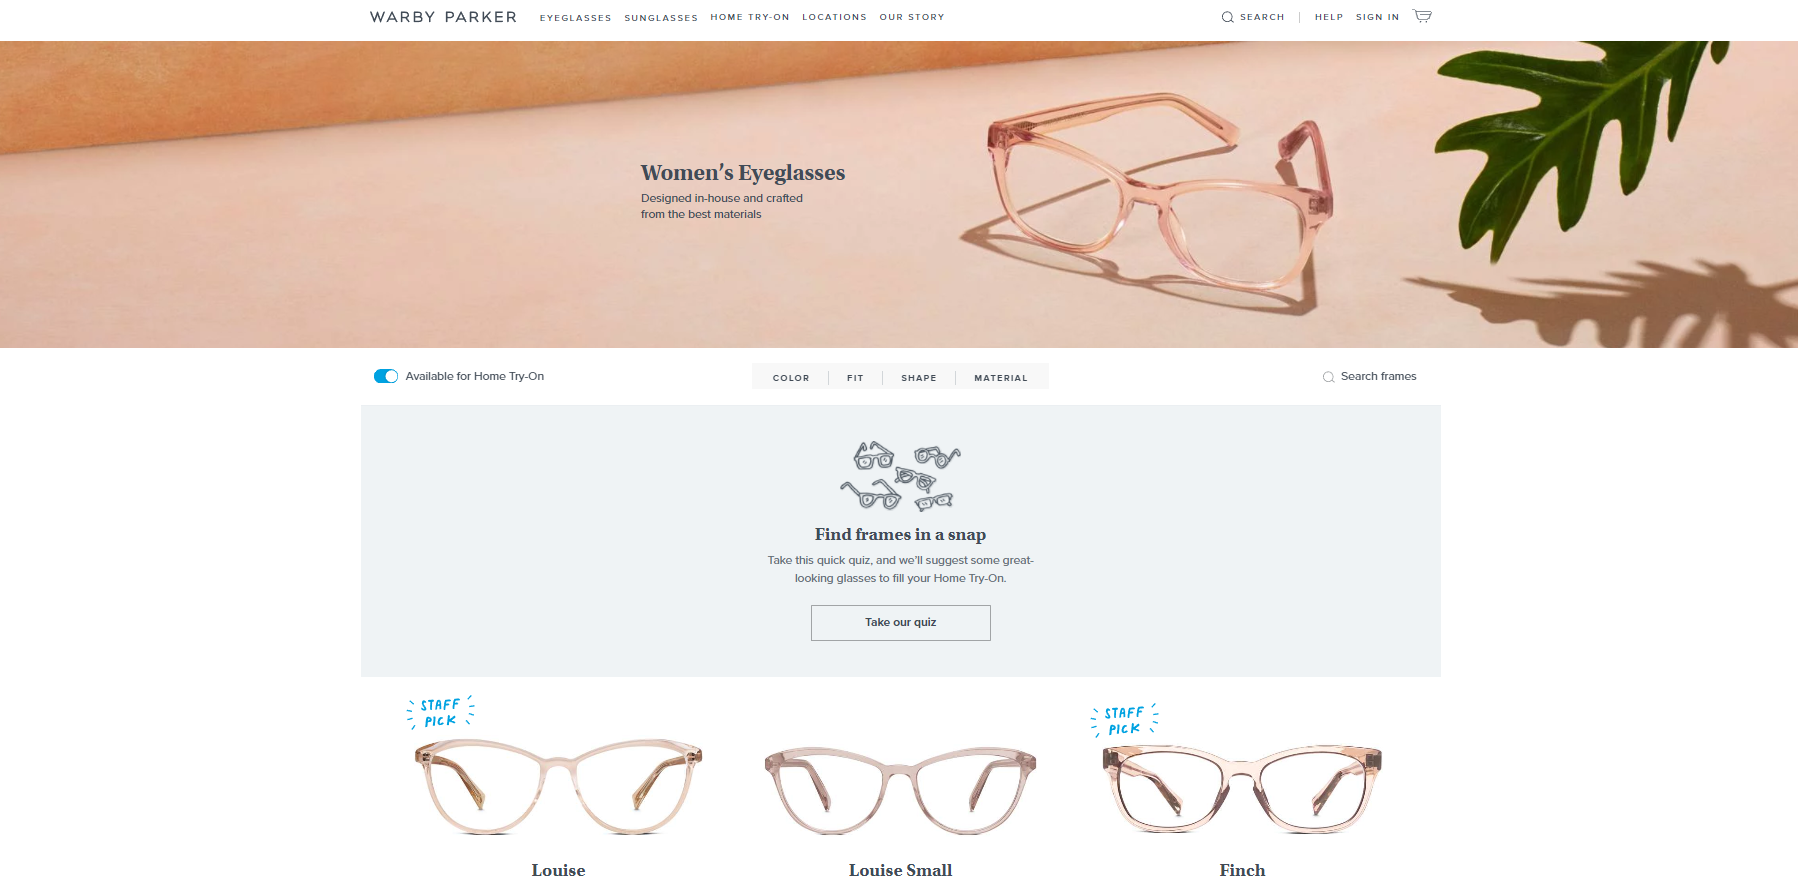 Warby Parker website page